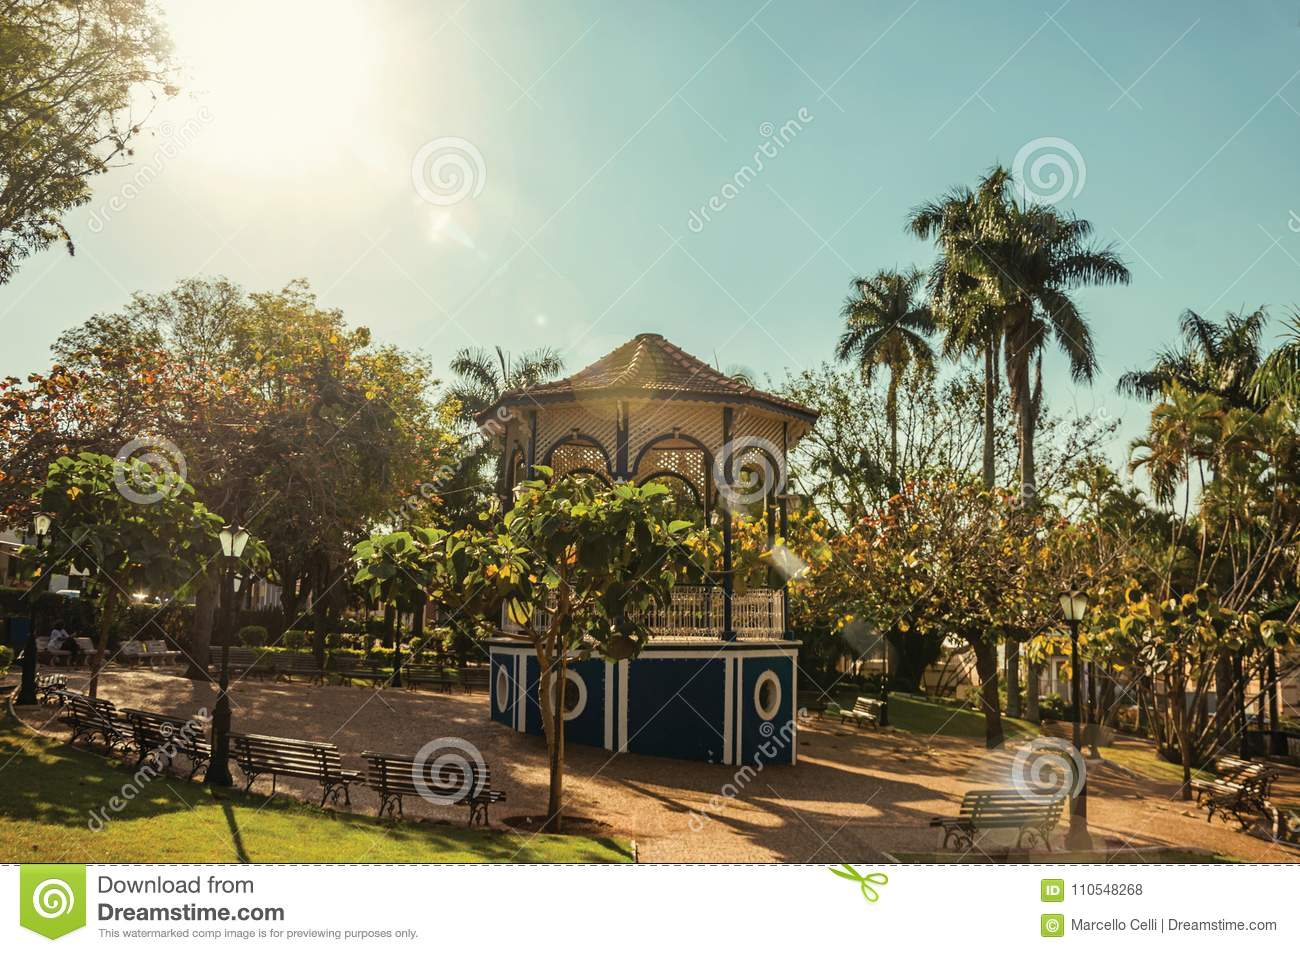 Old and colorful gazebo of square in the middle of verdant garden full of trees, in a bright sunny day at São Manuel.